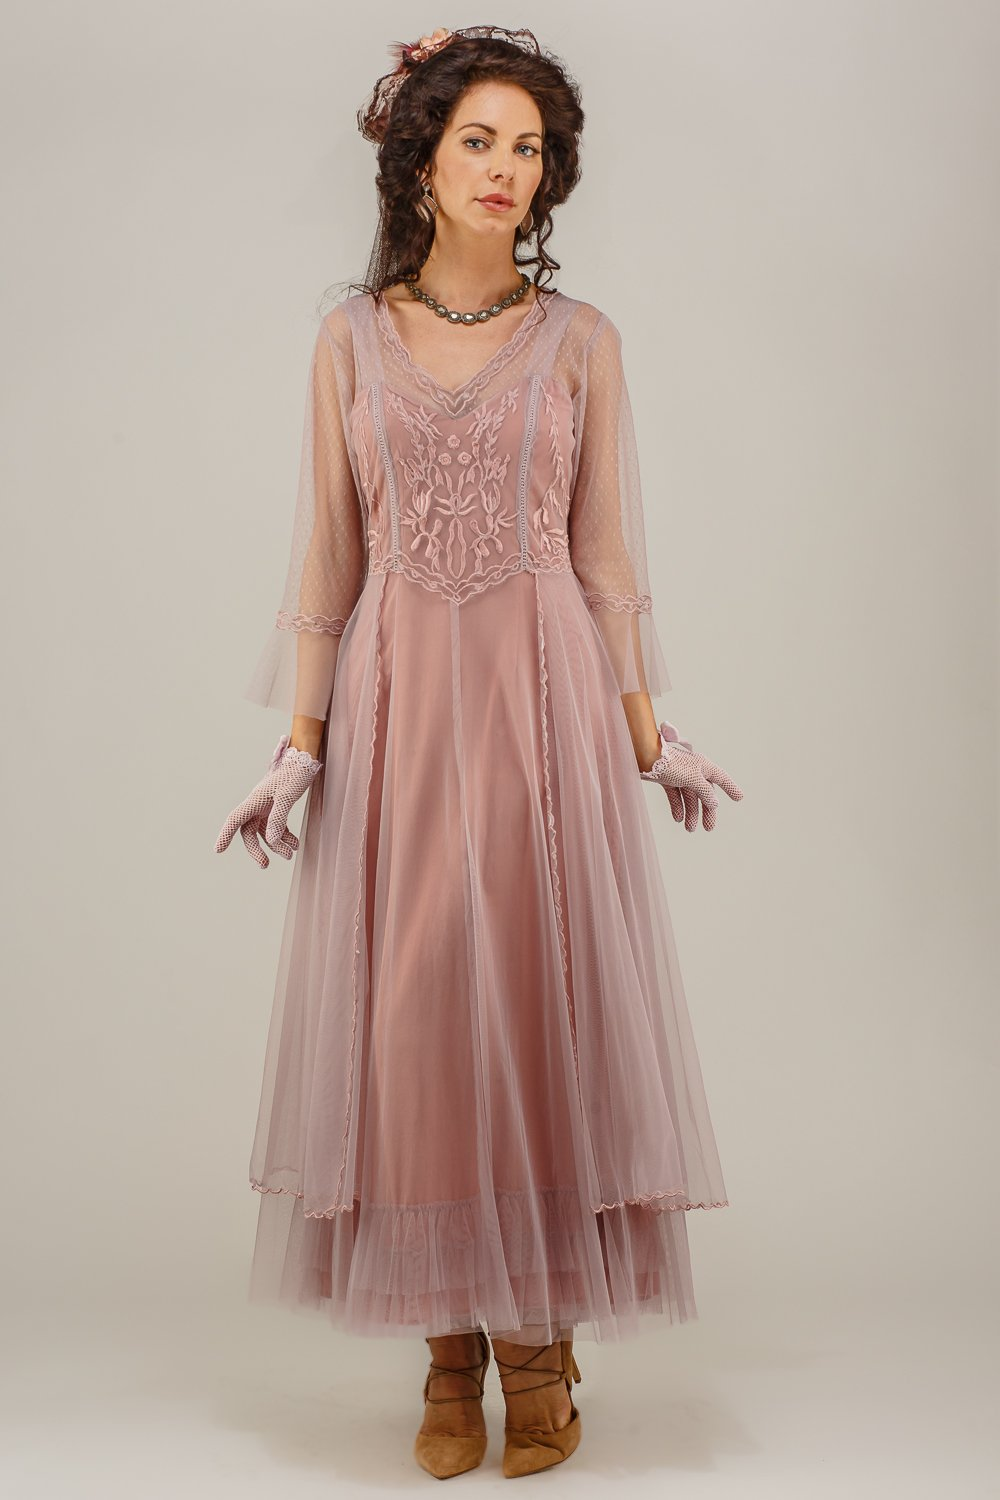 Vivian cl mauve gown in evening gown pinterest mauve